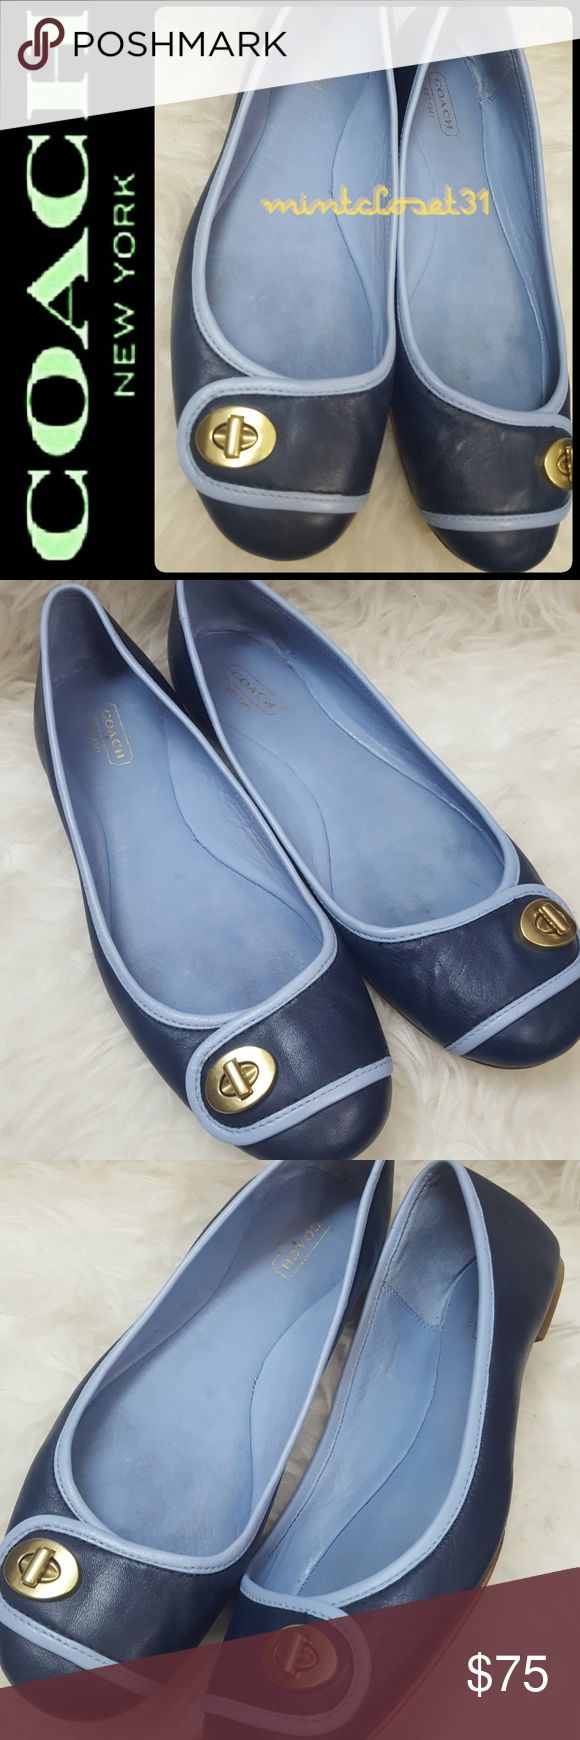 Coach Leather Flats Coach Signature Shoes in Gorgeous Leather Upper Leather Flats! Iconic Coach Brand in Round Toe Style with Gold brass tone Turn Lock Detail on Vamp! Get Classy with this Navy Shade in minimalistic design for anytime wear!  Features Tonal Stitching with Softly Padded footbed! Top Notch quality to last a lifetime! Used in Good Condition! Size US 8 1/2B! Coach Shoes Flats & Loafers